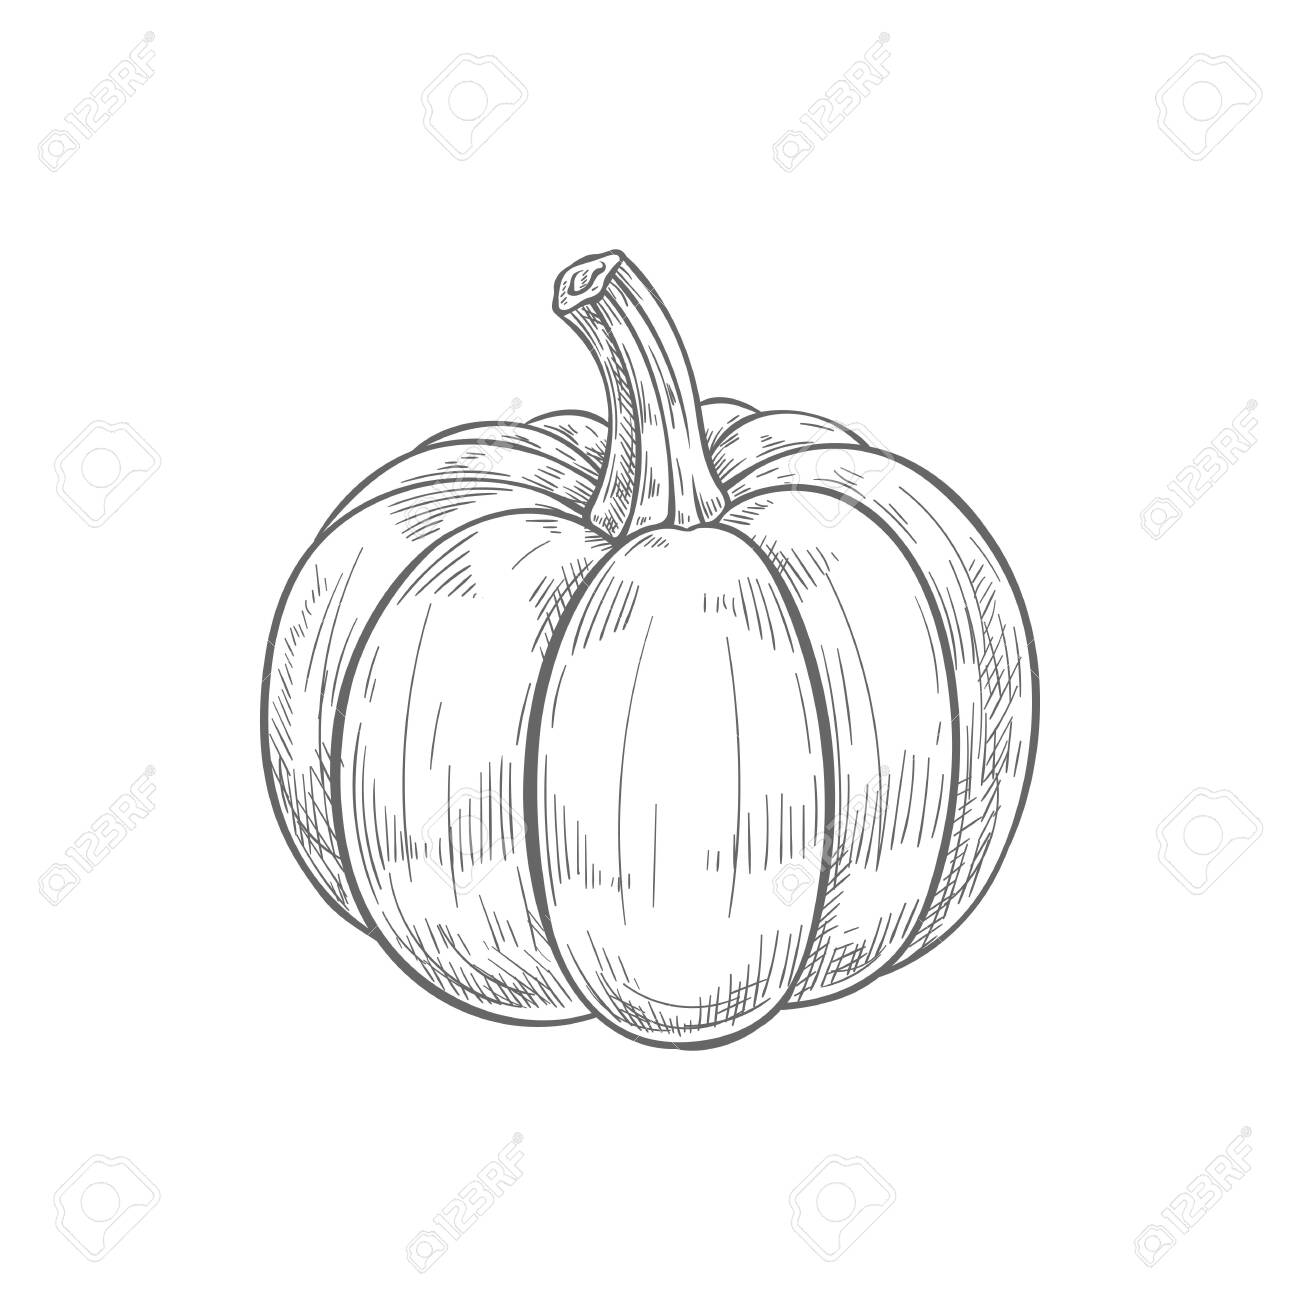 Pumpkin With Stem Isolated Raw Gourd Squash Monochrome Sketch Royalty Free Cliparts Vectors And Stock Illustration Image 144445555